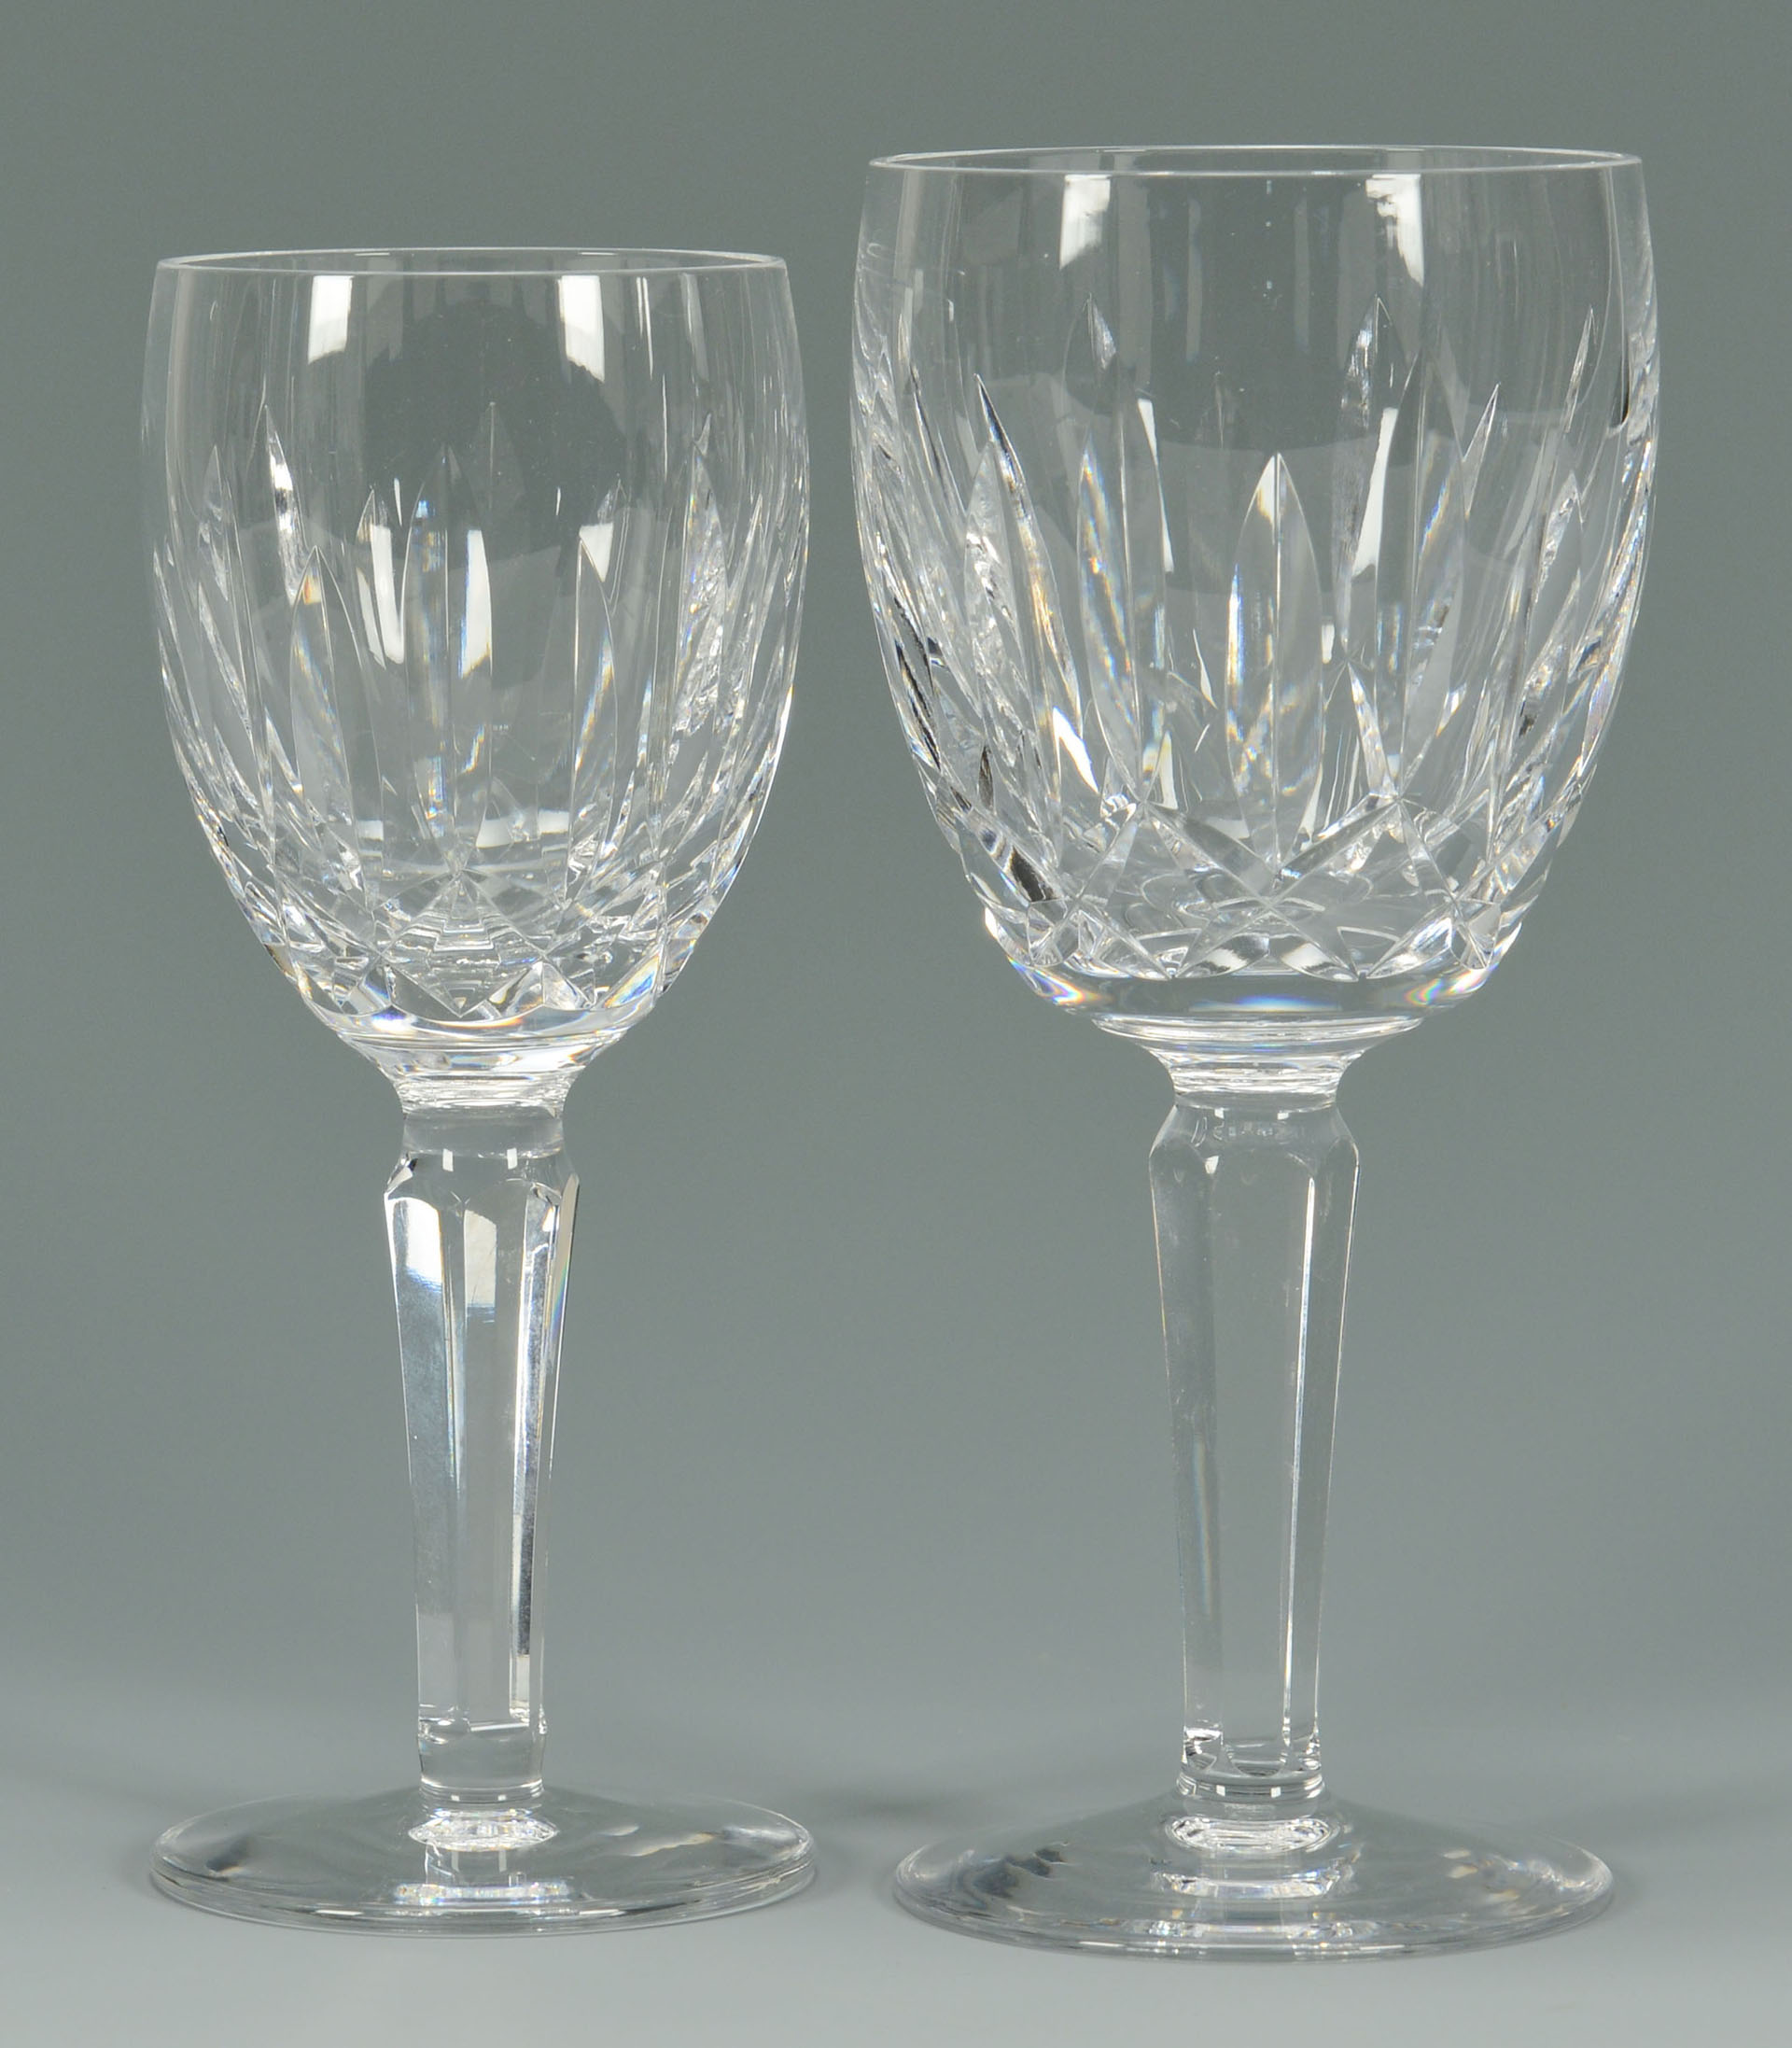 Lot 626 16 Waterford Crystal Glasses Kildare Pattern